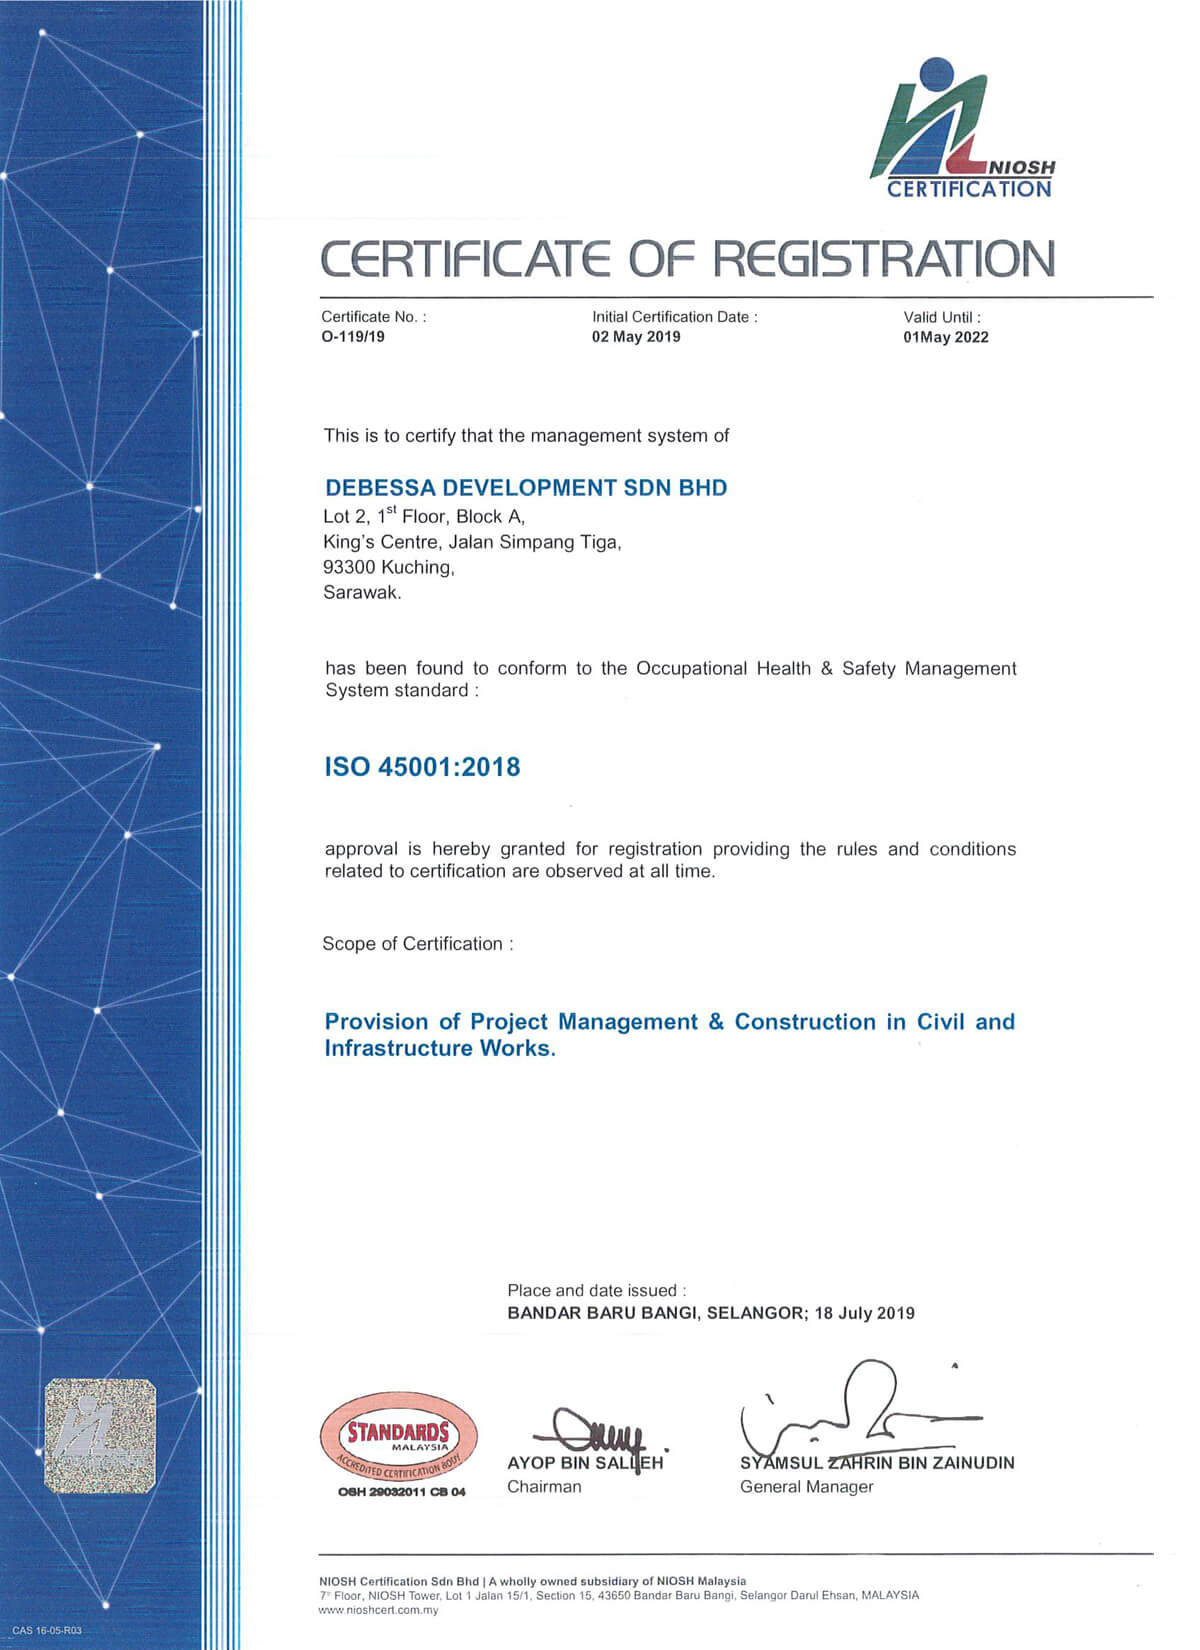 Provision of Project Management & Construction in Civil and Infrastructure Works - ISO 45001:2018